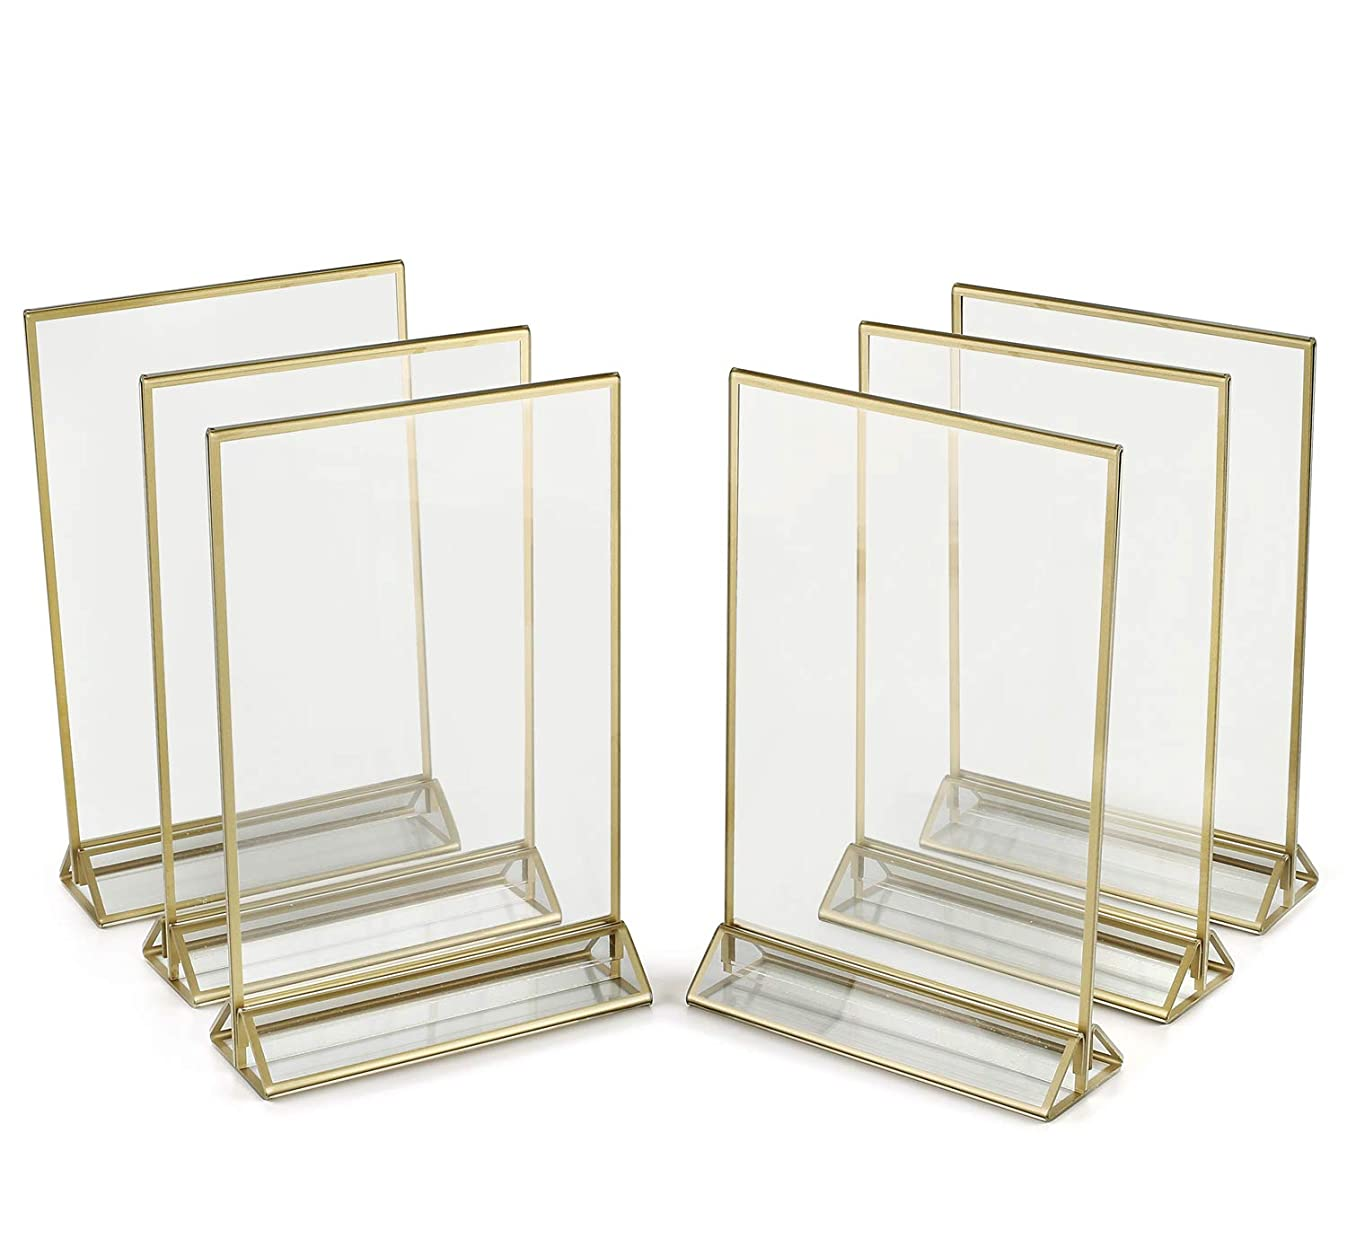 SUPER STAR QUALITY Clear Acrylic 2 Sided Frames With Gold Borders and Vertical Stand (Pack of 6)) | Ideal for Wedding Table Numbers, Double Sided Sign, Clear Photos, Menu Holders